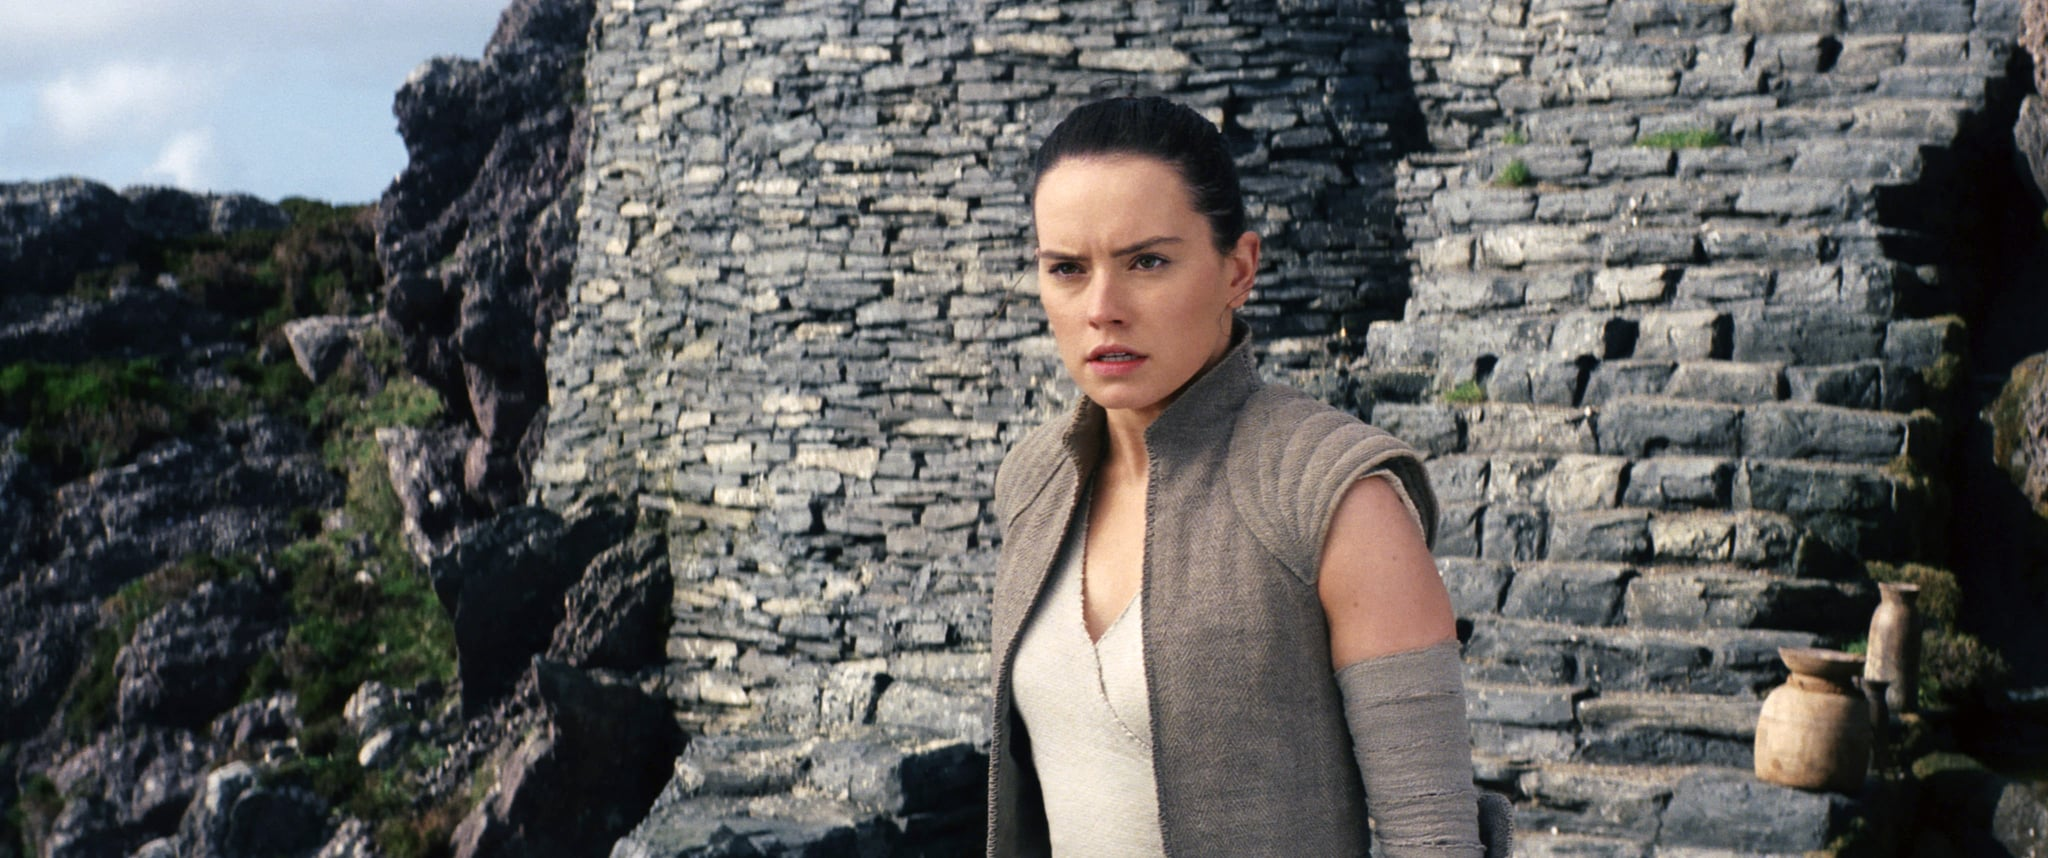 STAR WARS: THE LAST JEDI, (aka STAR WARS: EPISODE VIII - THE LAST JEDI), Daisy Ridley, 2017. ph: Industrial Light & Magic / Walt Disney Studios Motion Pictures /  Lucasfilm Ltd. /Courtesy Everett Collection